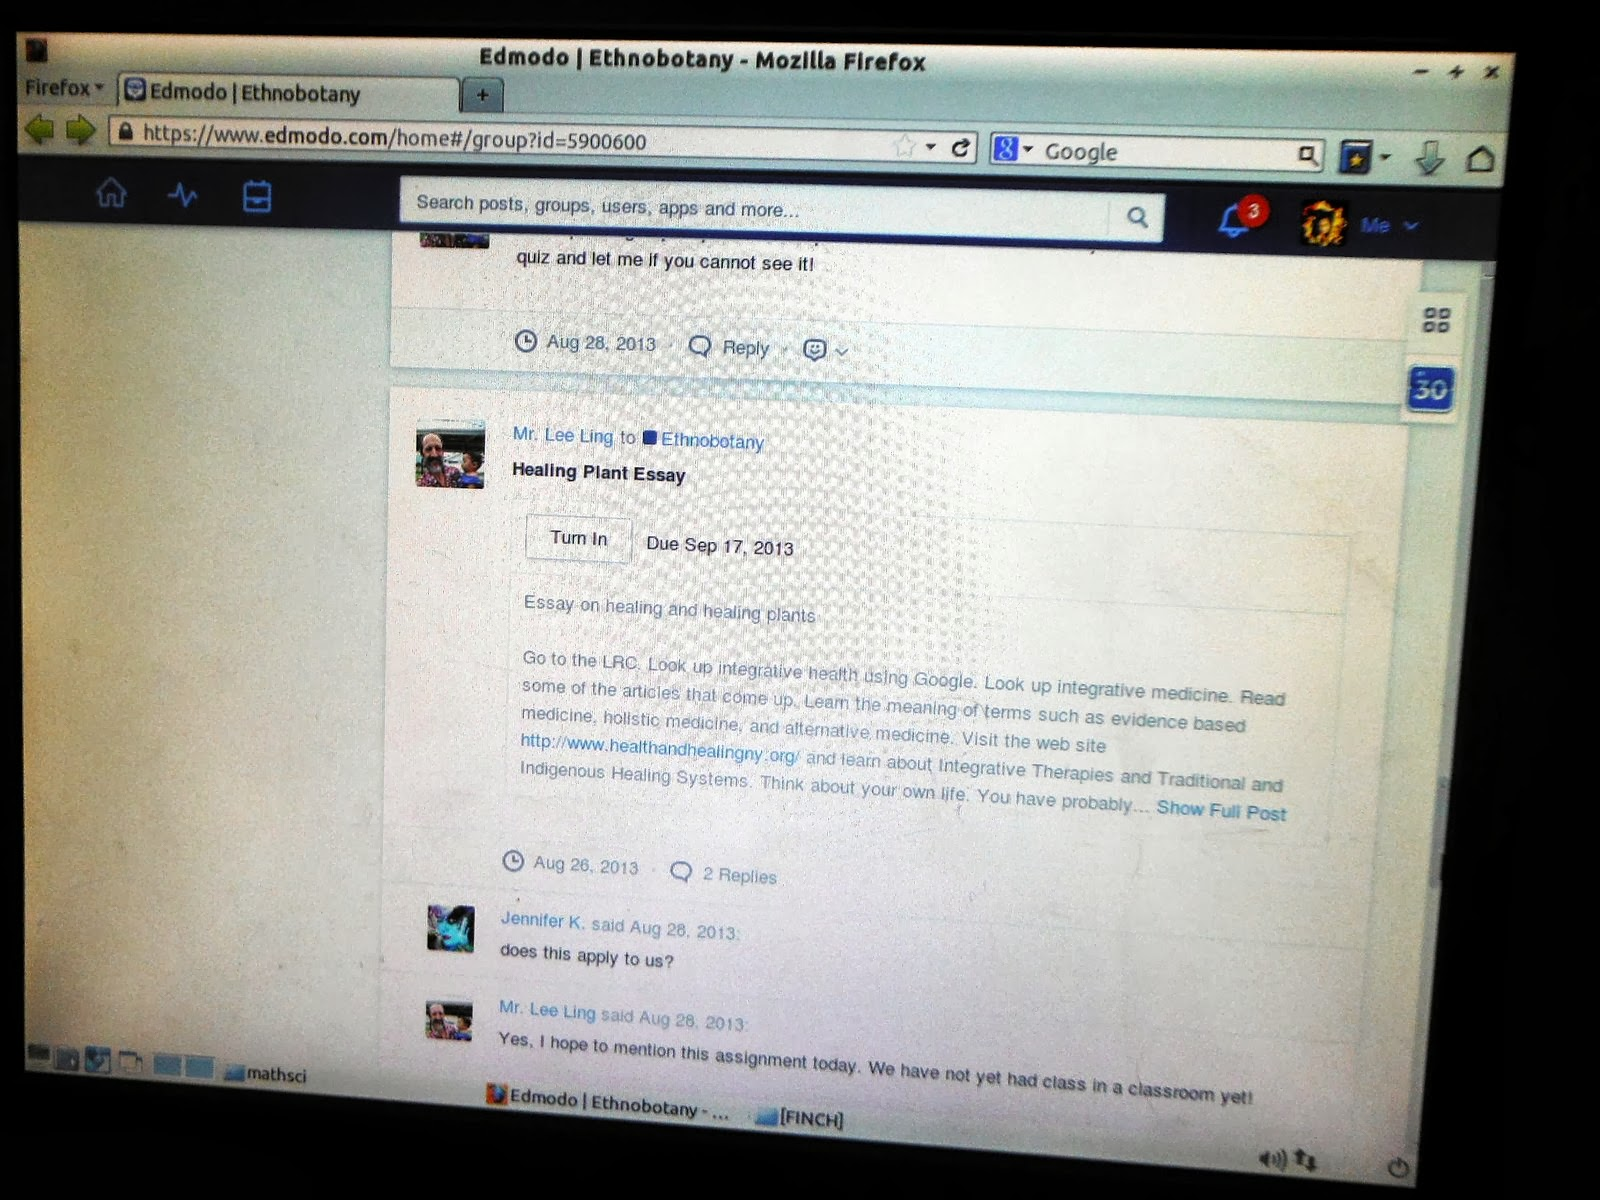 edmodo assignment submission in this instance the student must scroll down to the assignment as the posts are in reverse chronological order